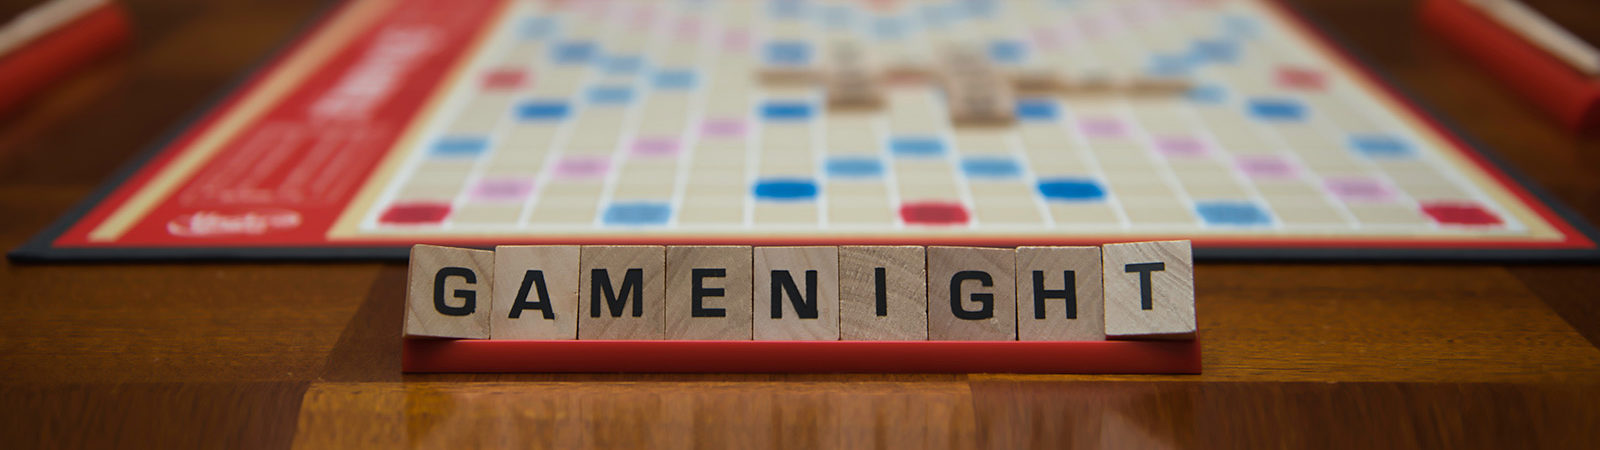 Scrabble tiles spelling out Game Night